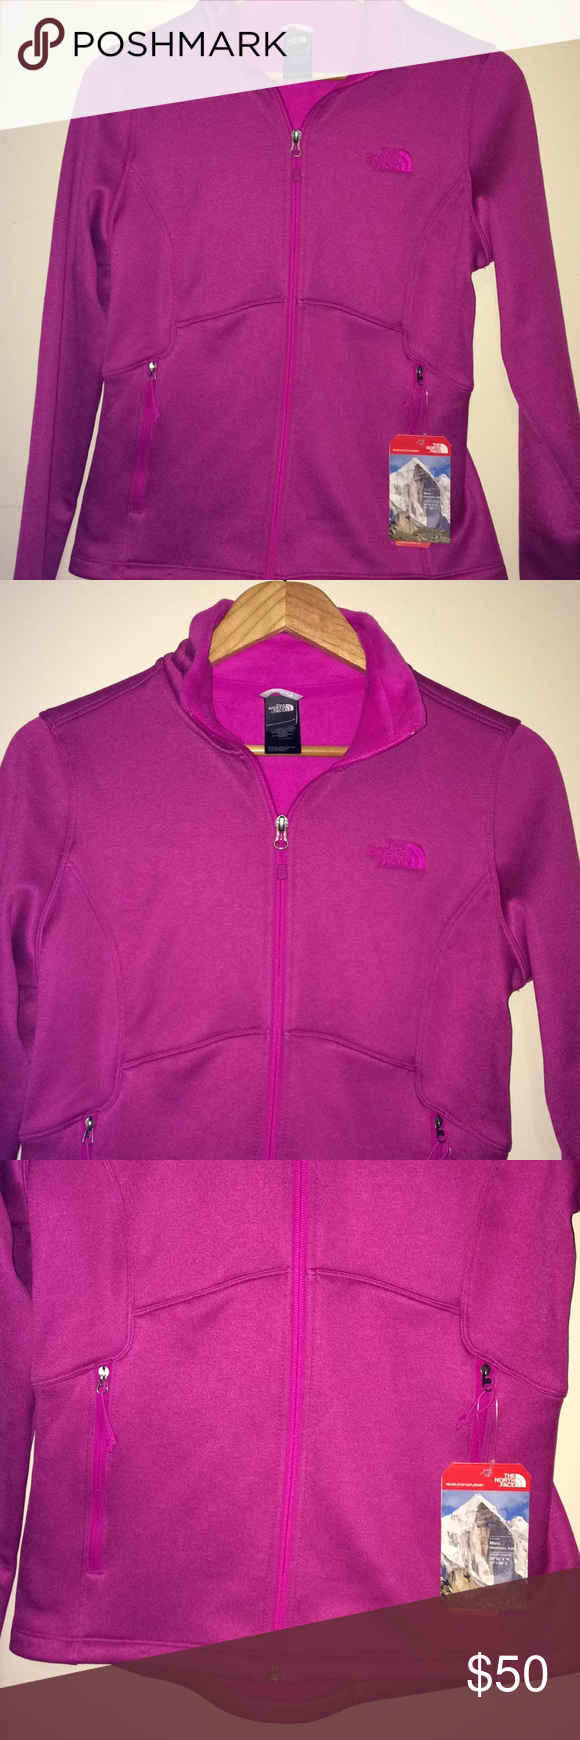 fdd881d93 The North Face Full Zip Sweater NWT The North Face full zip sweater ...